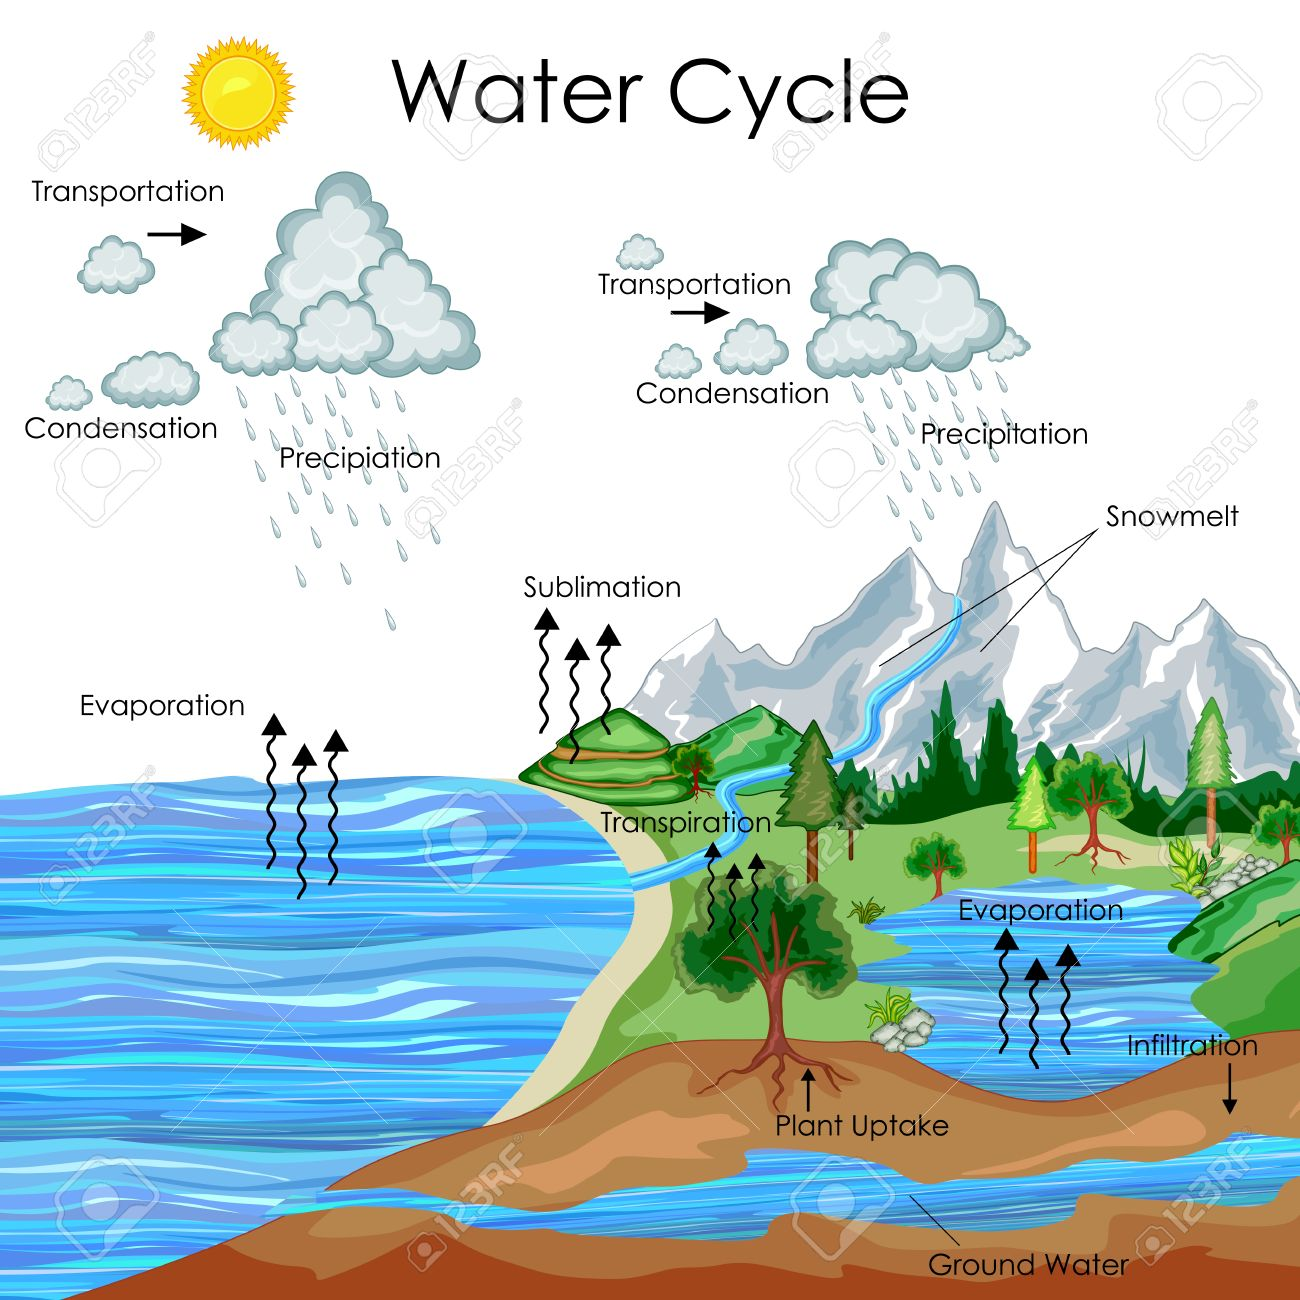 education chart of water cycle diagram royalty free cliparts Evaporation Precipitation Runoff education chart of water cycle diagram stock vector 80714981